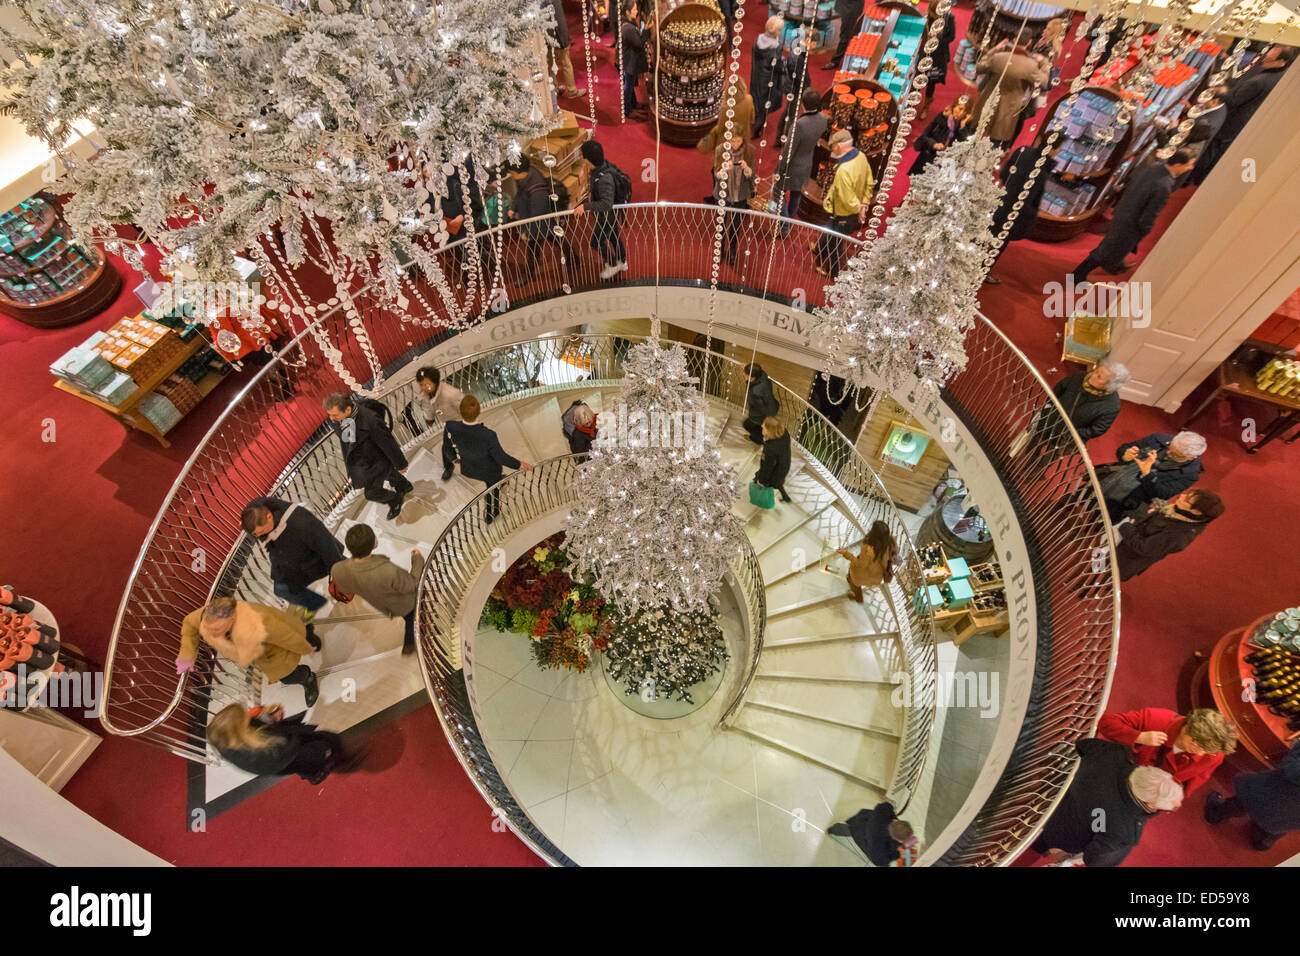 London fortnum and mason the central staircase with silver - Fortnum and mason christmas decorations ...